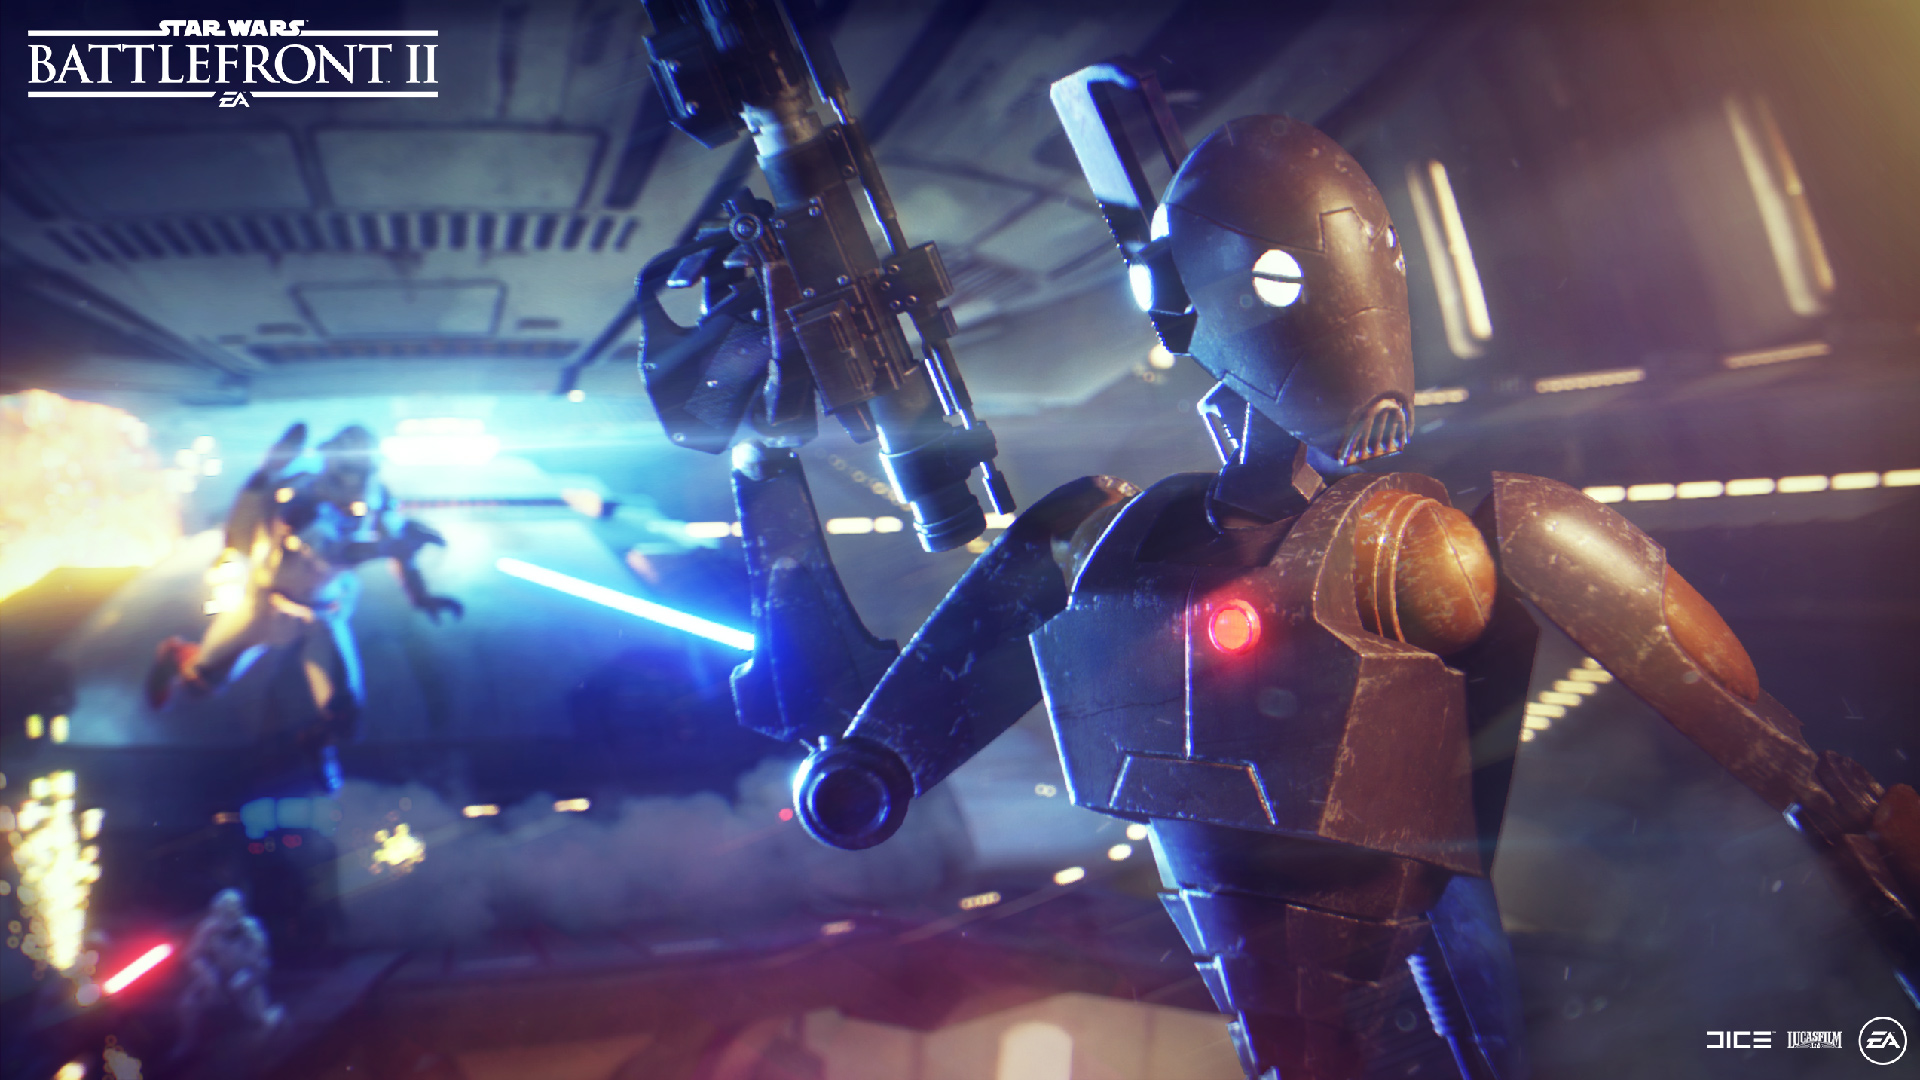 Star Wars Battlefront II's Capital Supremacy mode leans into